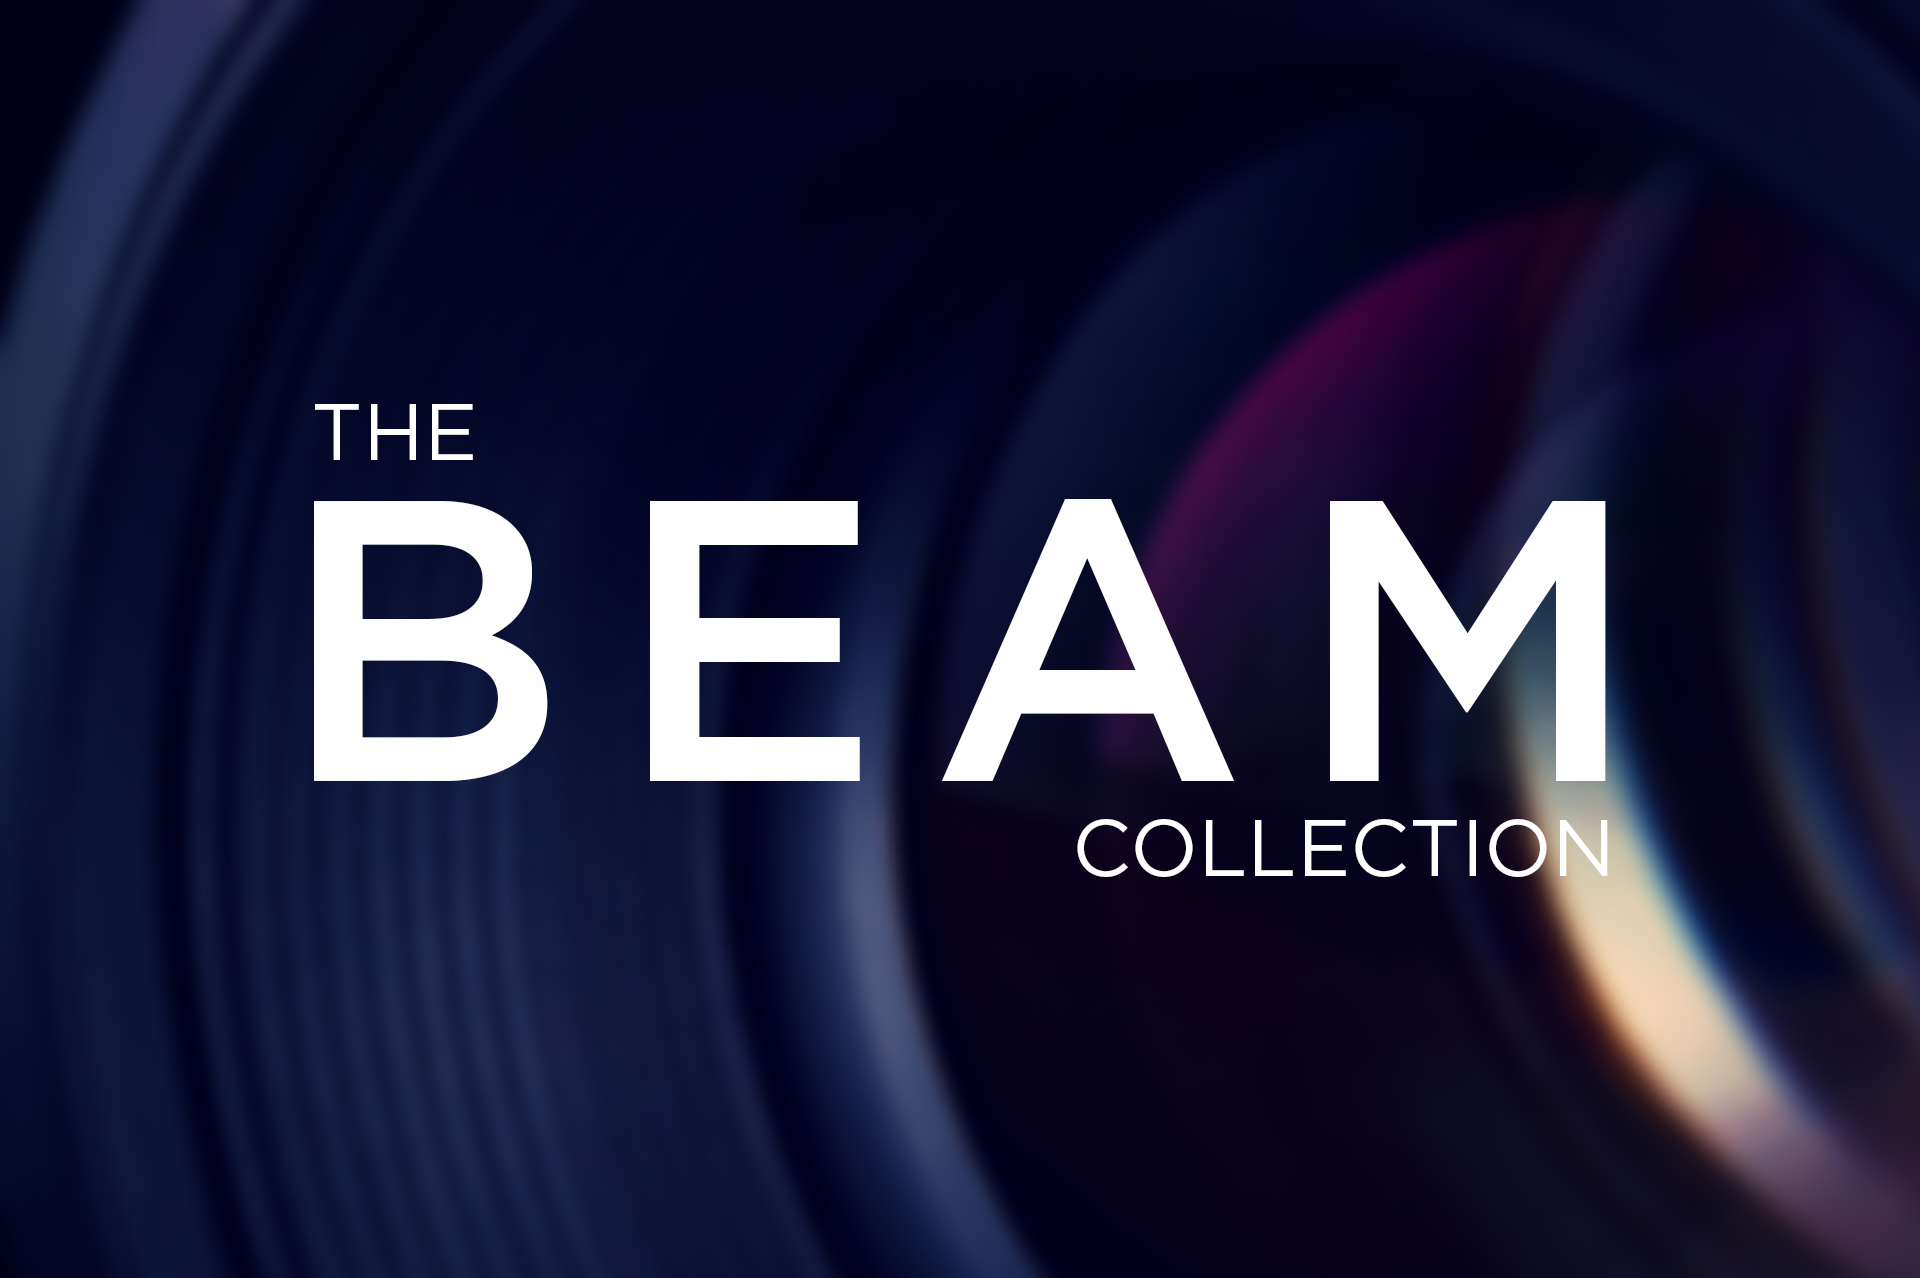 The BEAM Collection - High End Production Equipment Rentals